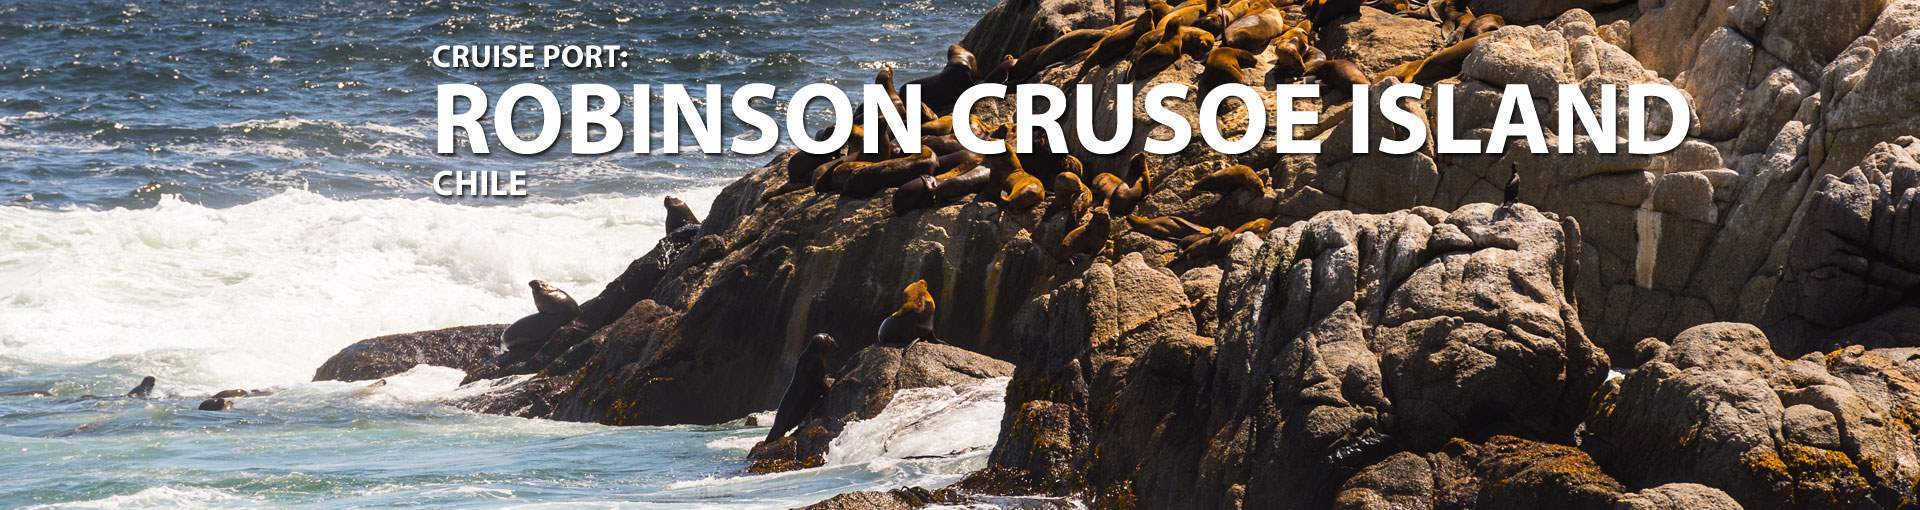 Cruises to Robinson Crusoe Island, Chile